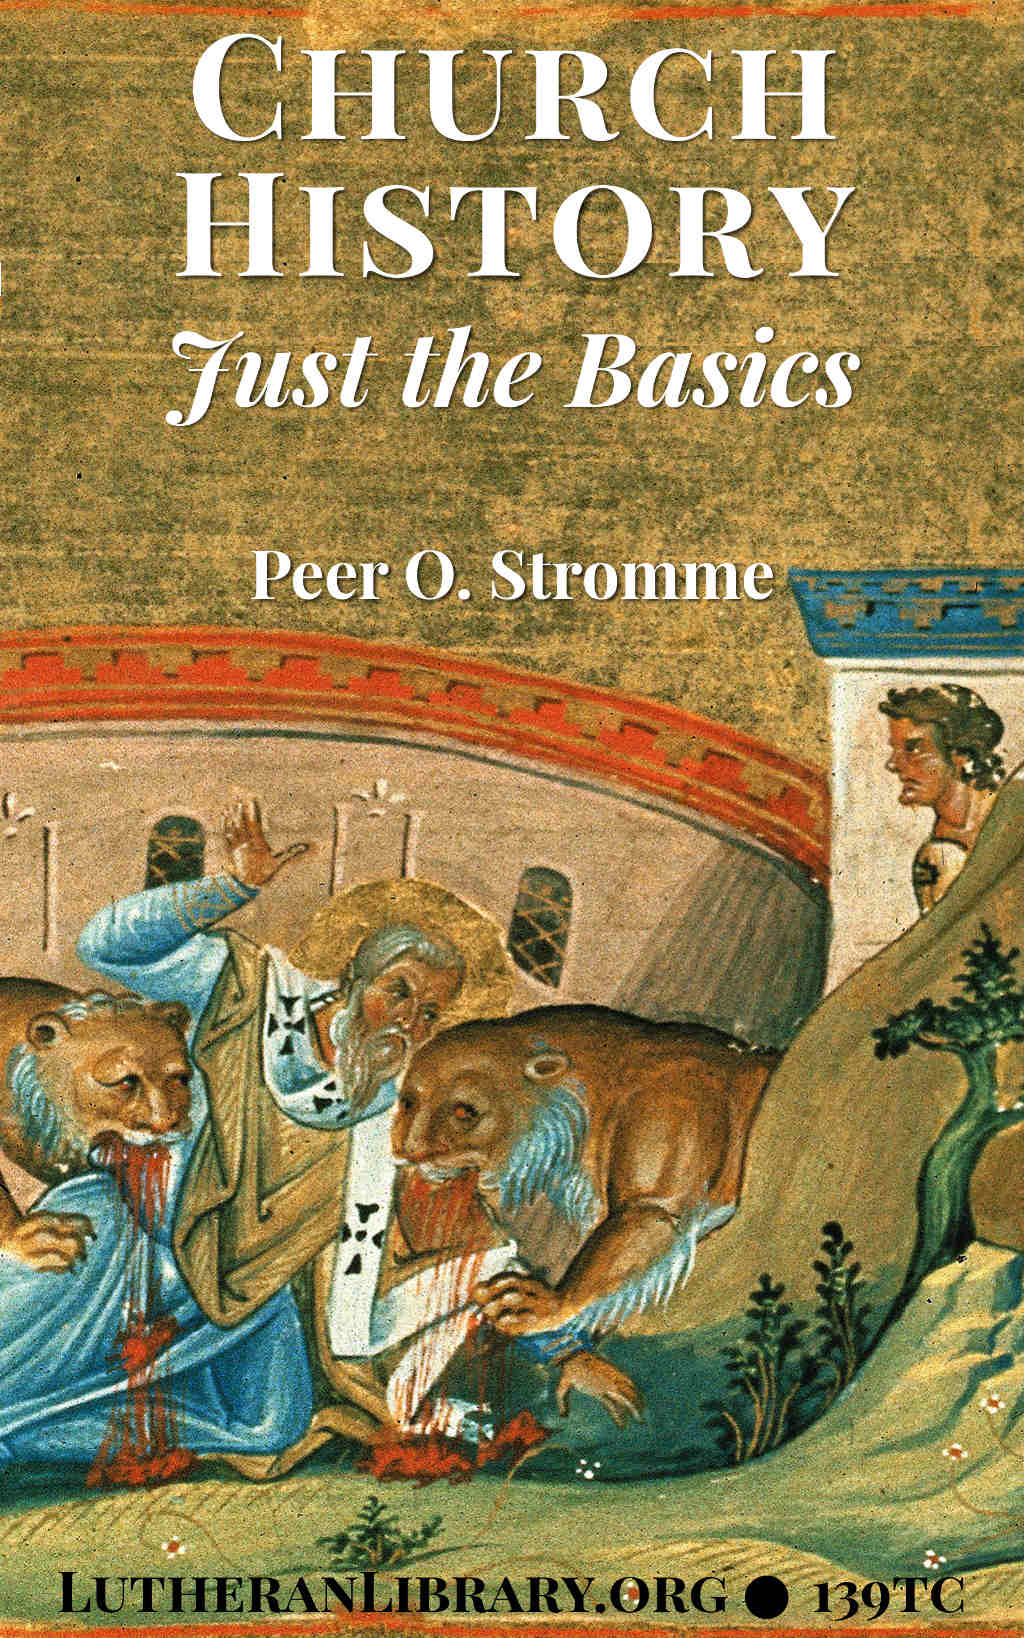 Church History - Just the Basics by Peer Olsen Stromme